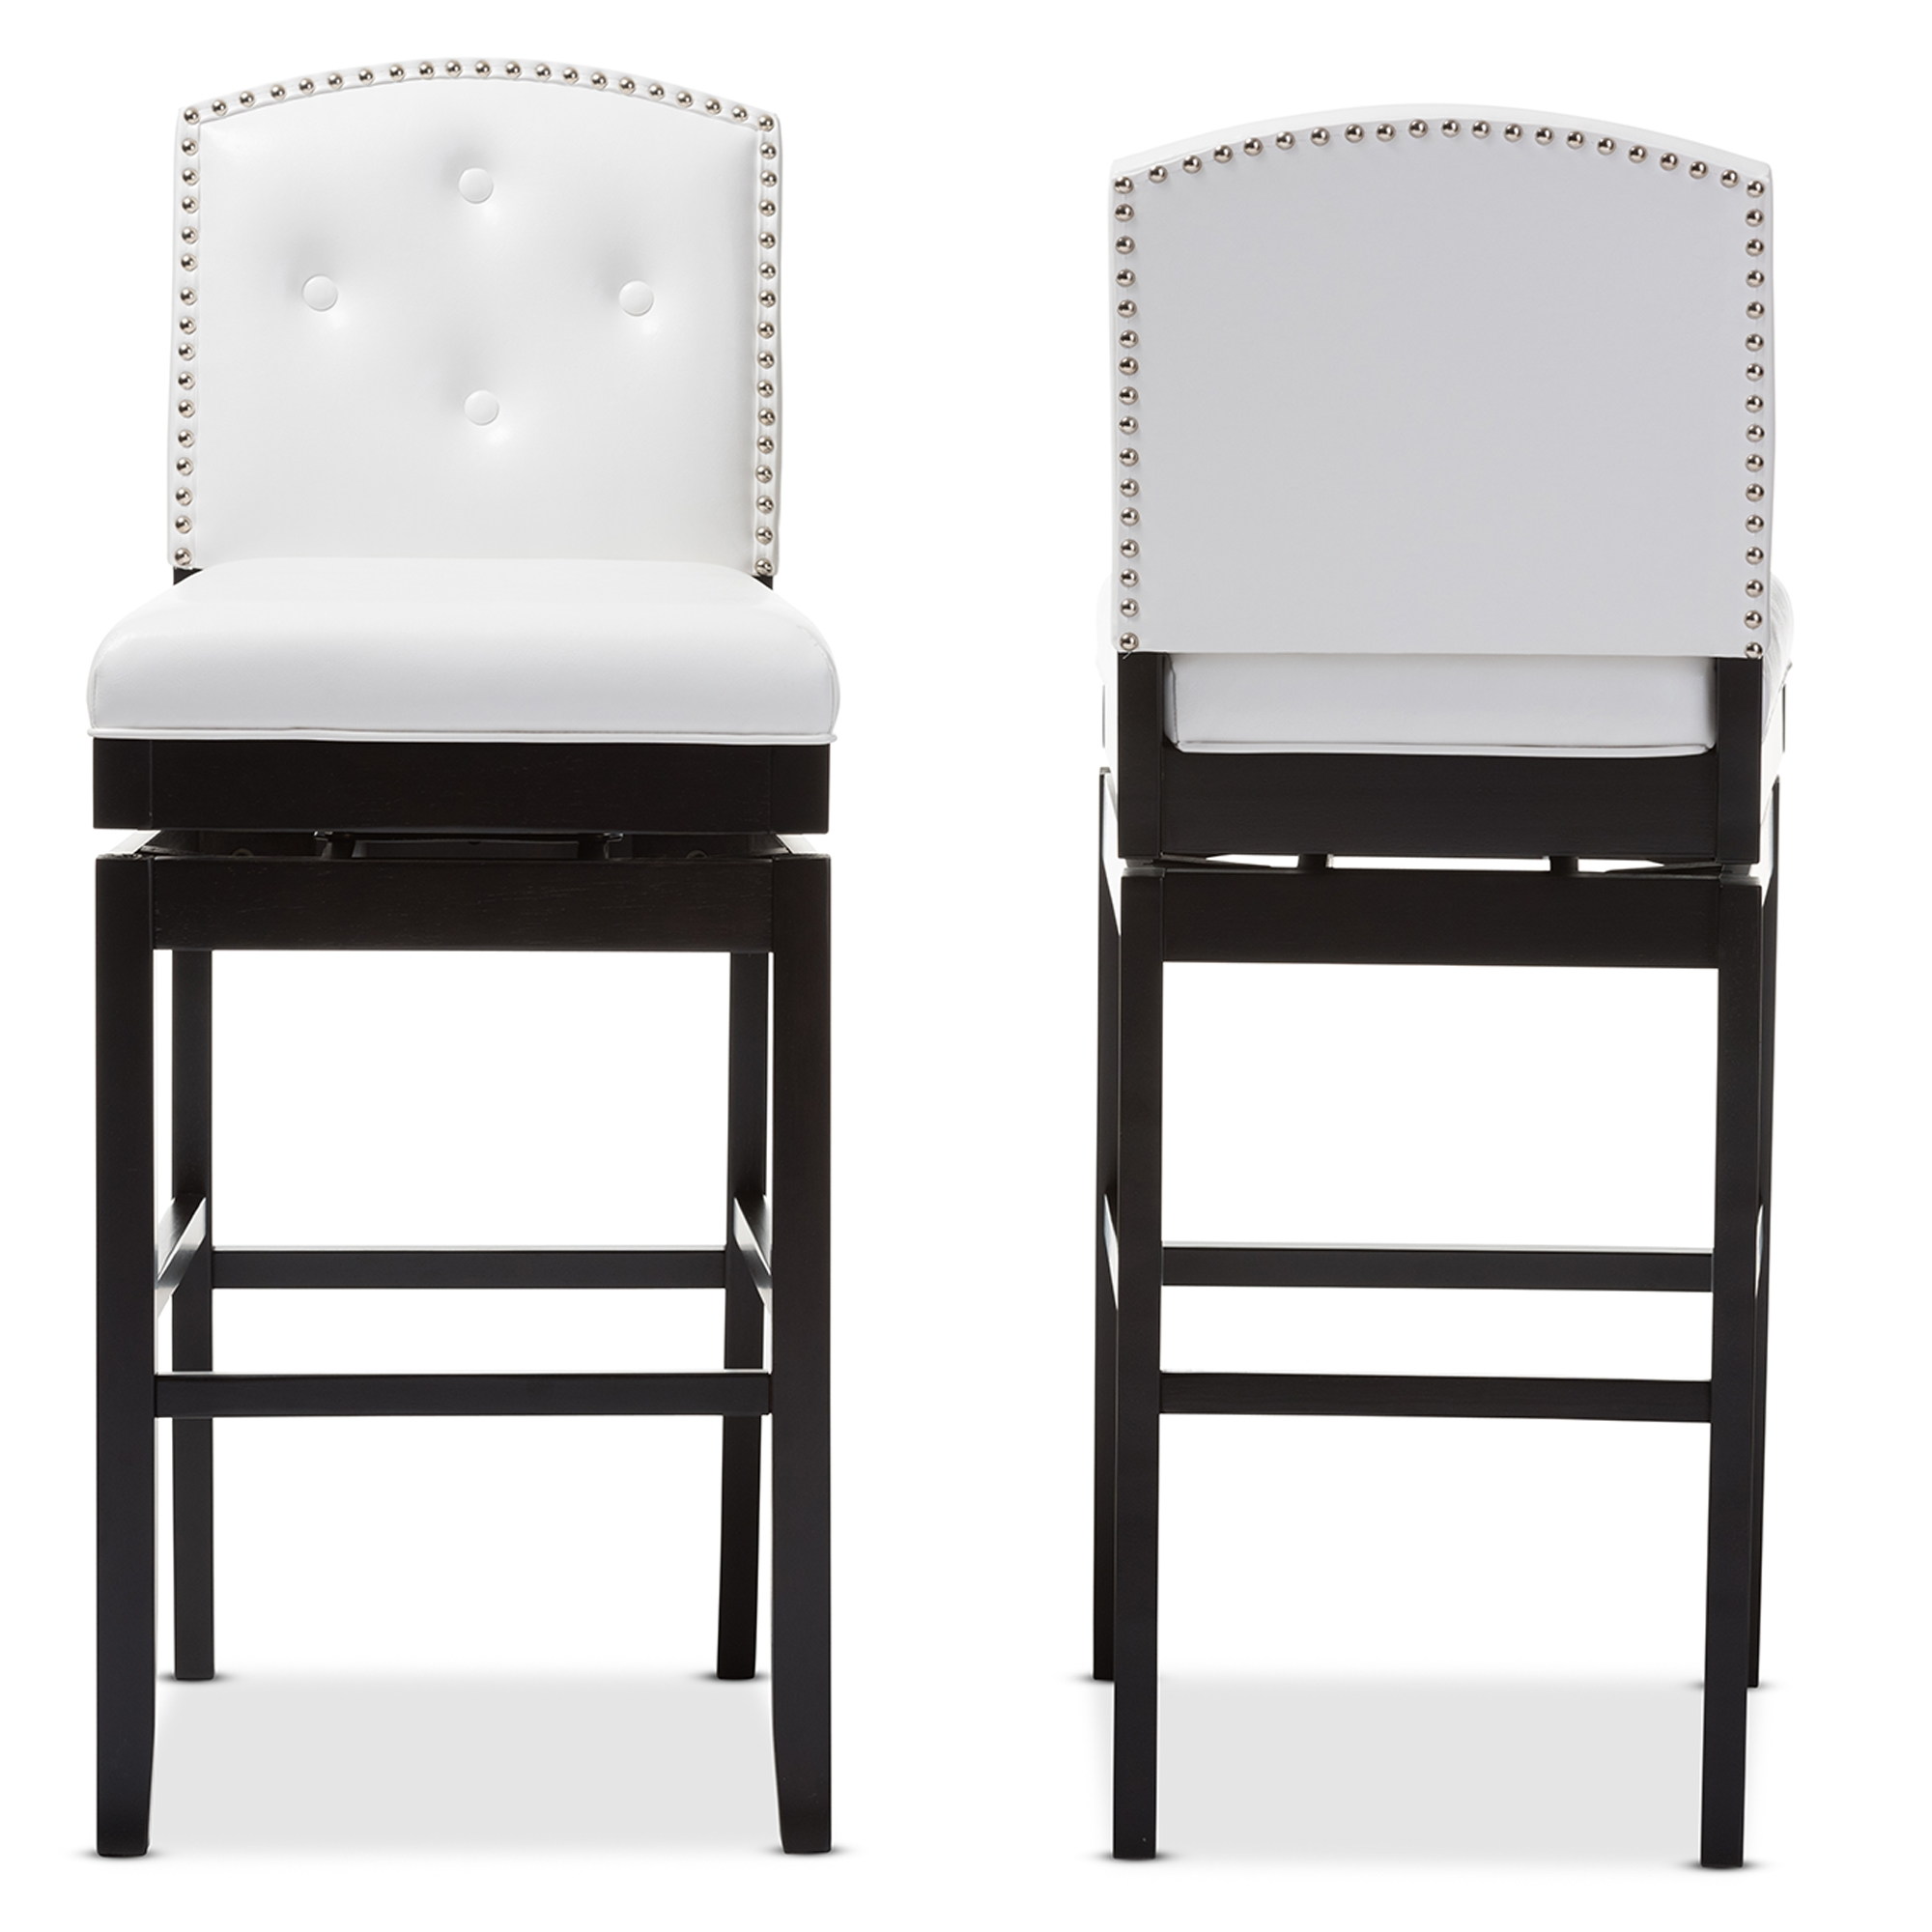 High Quality Baxton Studio Ginaro Modern And Contemporary White Faux Leather  Button Tufted Upholstered Swivel Bar Stool ...